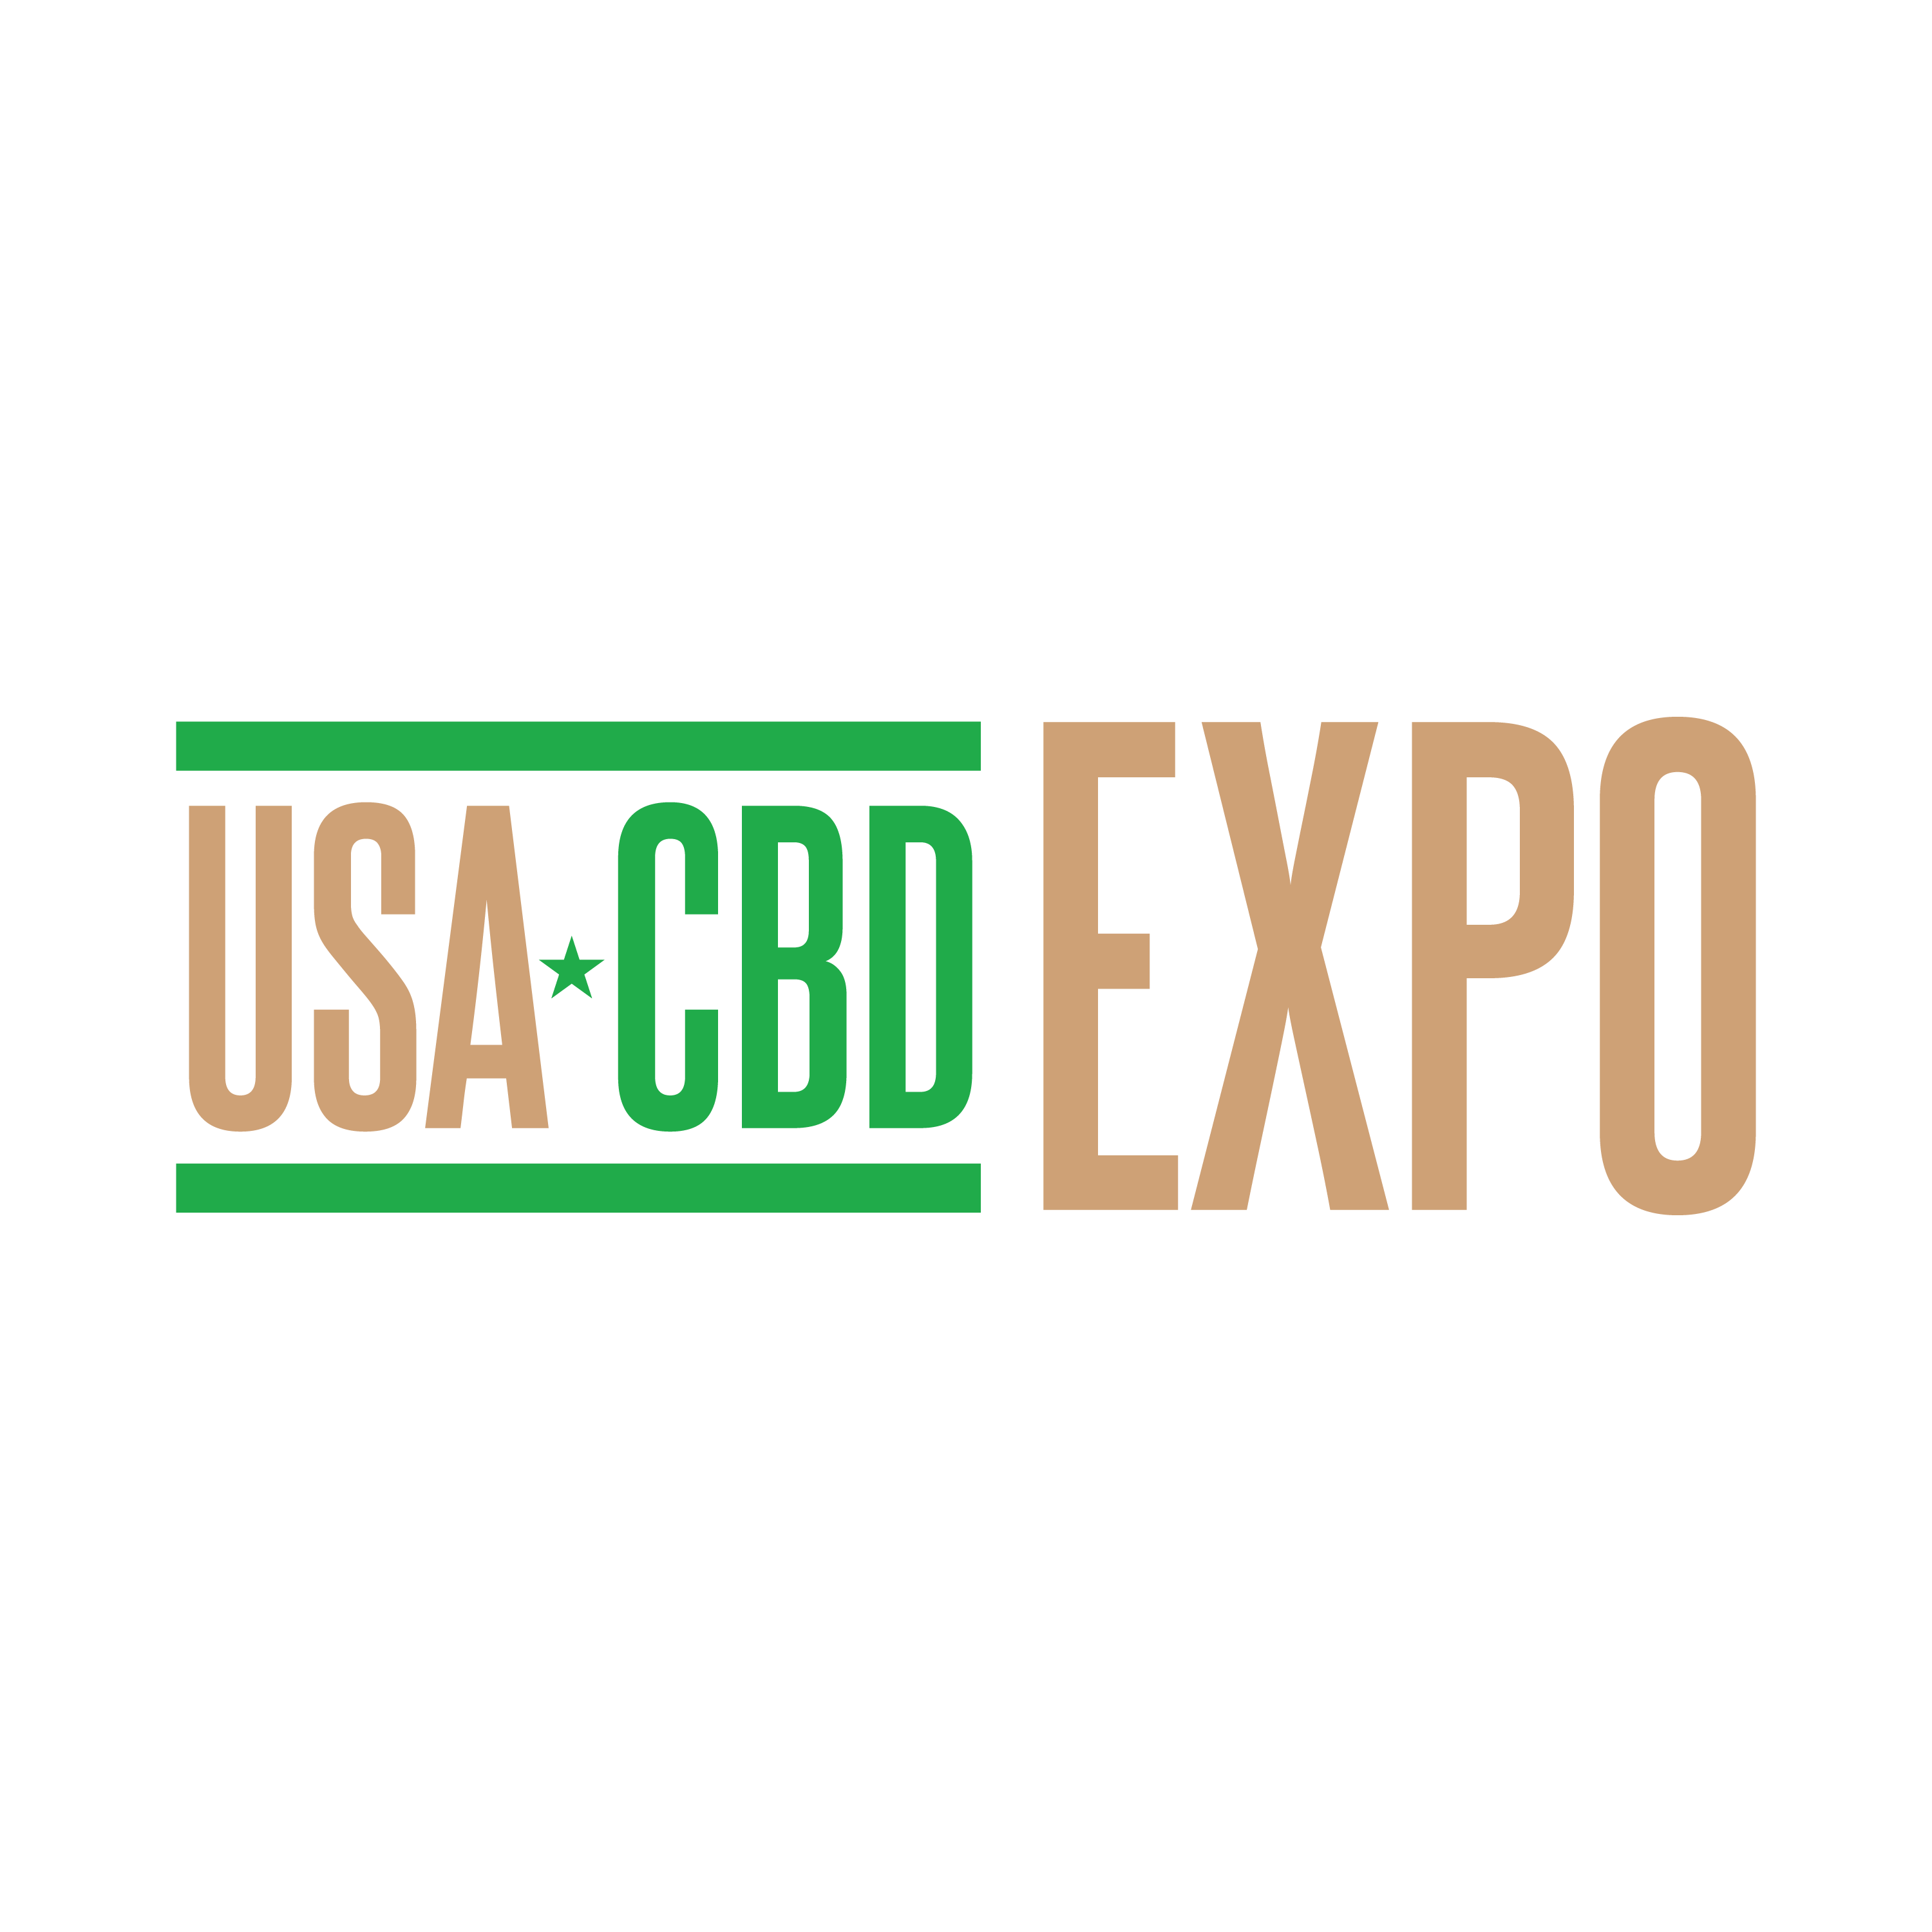 The Best of the USA CBD Conference Feb 2020